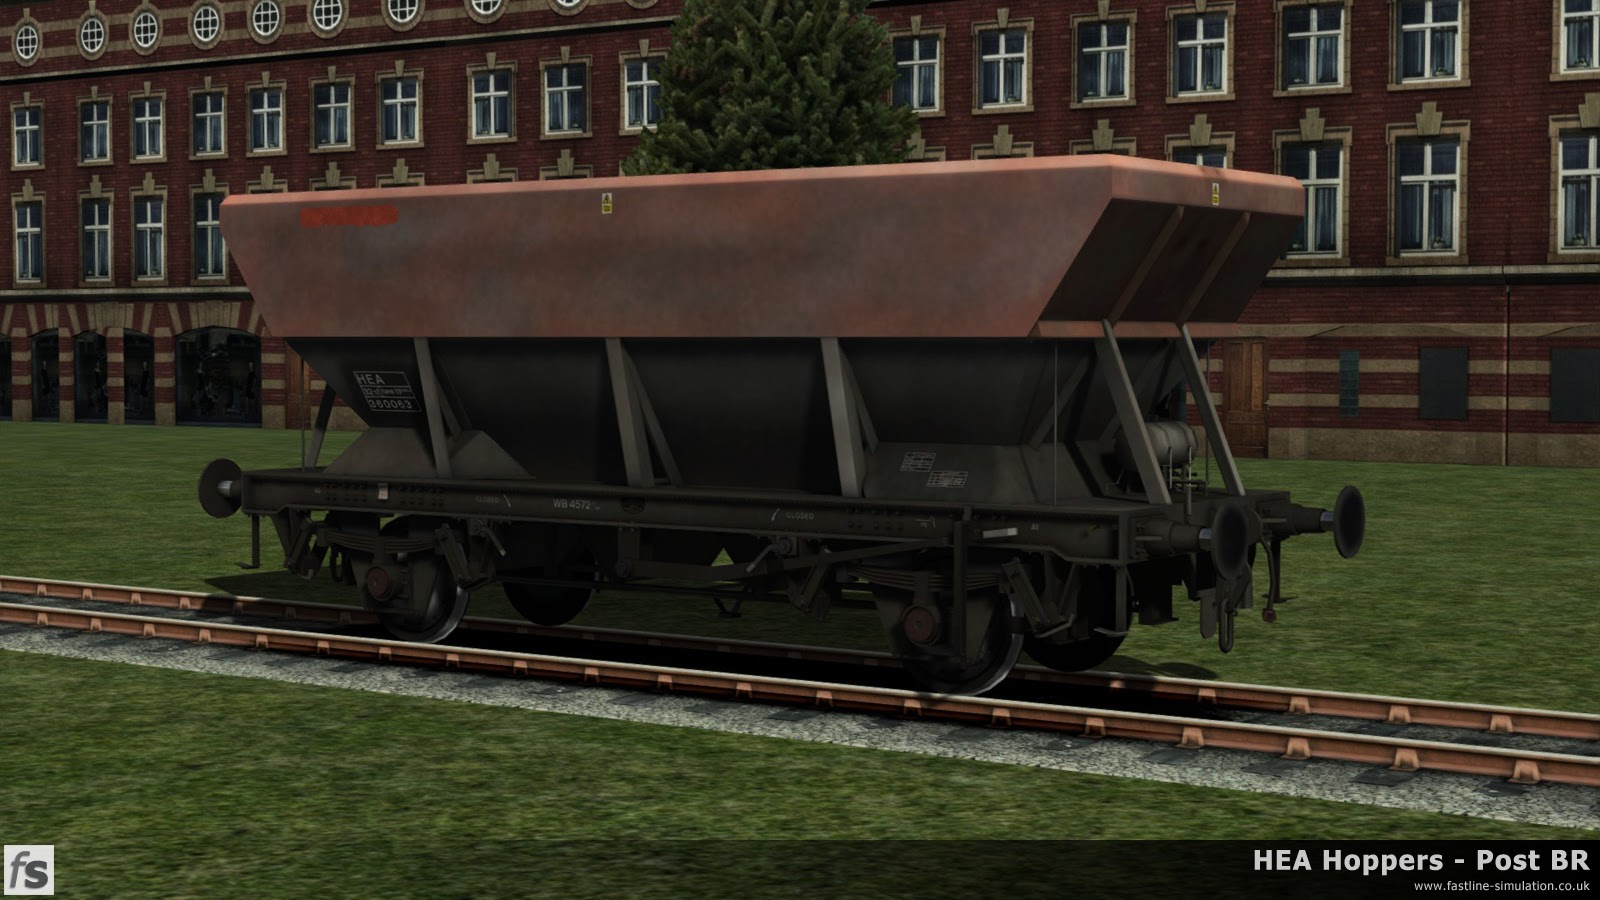 HEA Hoppers - Post BR: Many of the HEA hoppers have continued to soldier on for many years wearing their liveries from up to 30 years ago. This example, under development for Train Simulator 2014, of an early example with central ladder has had its Railfreight logos painted out, the end ladders removed and lettering renewed.